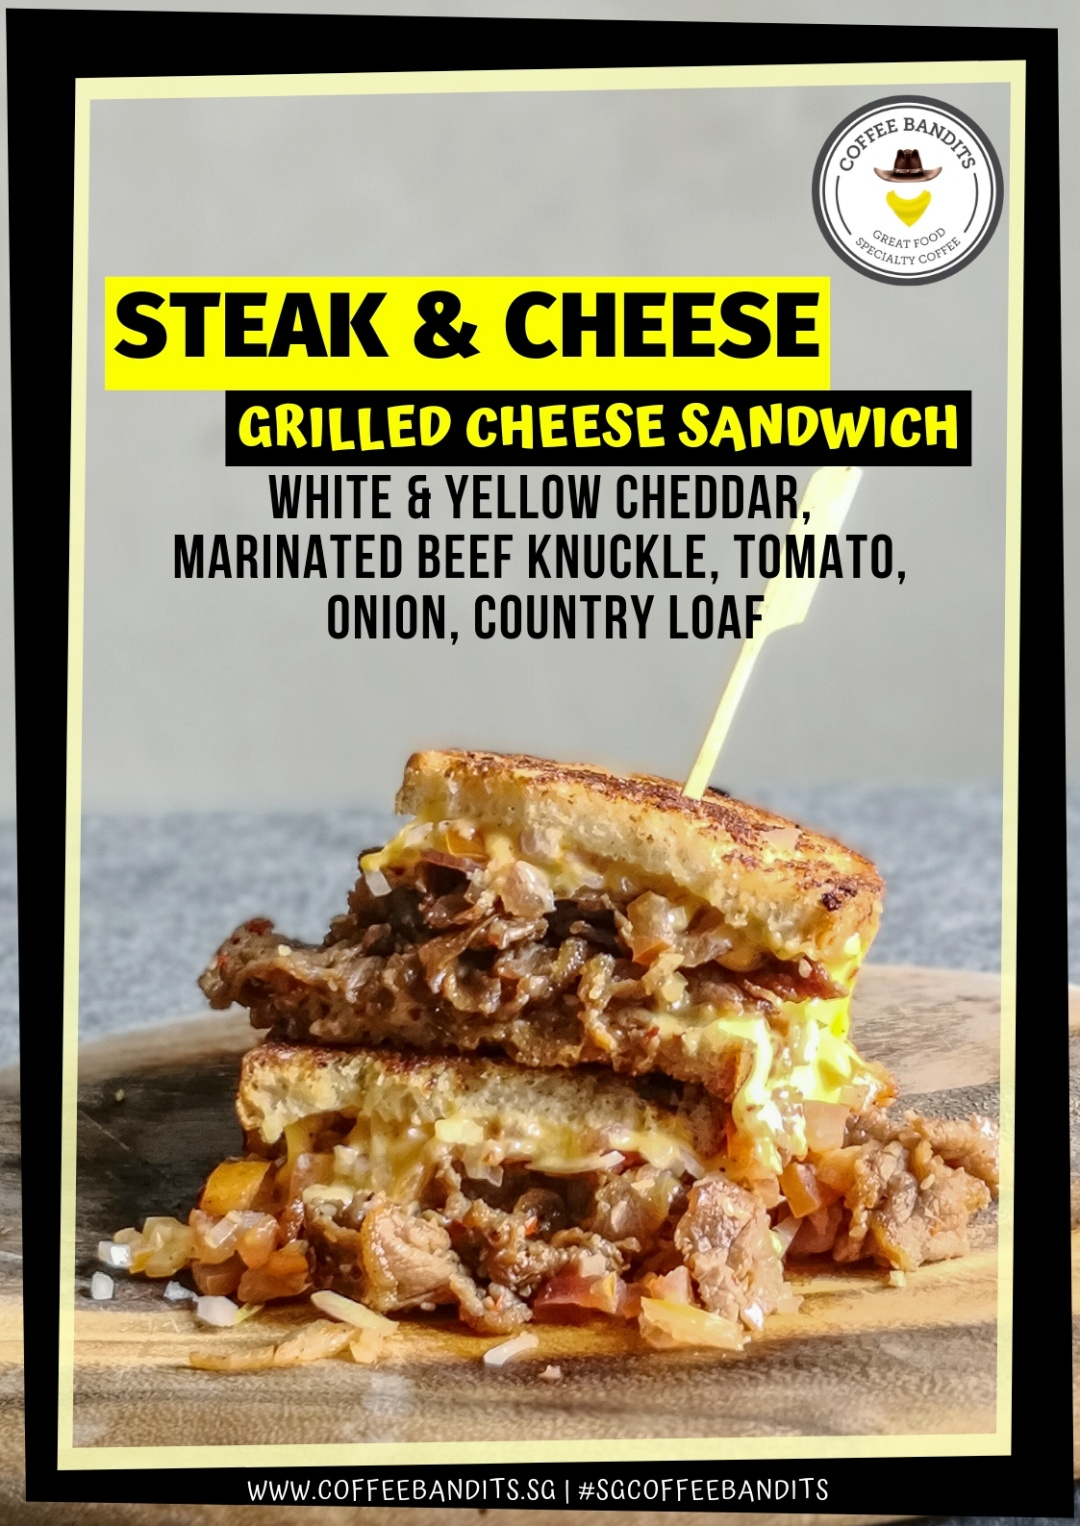 Steak & Cheese Grilled Cheese Sandwich | joanne-khoo.com